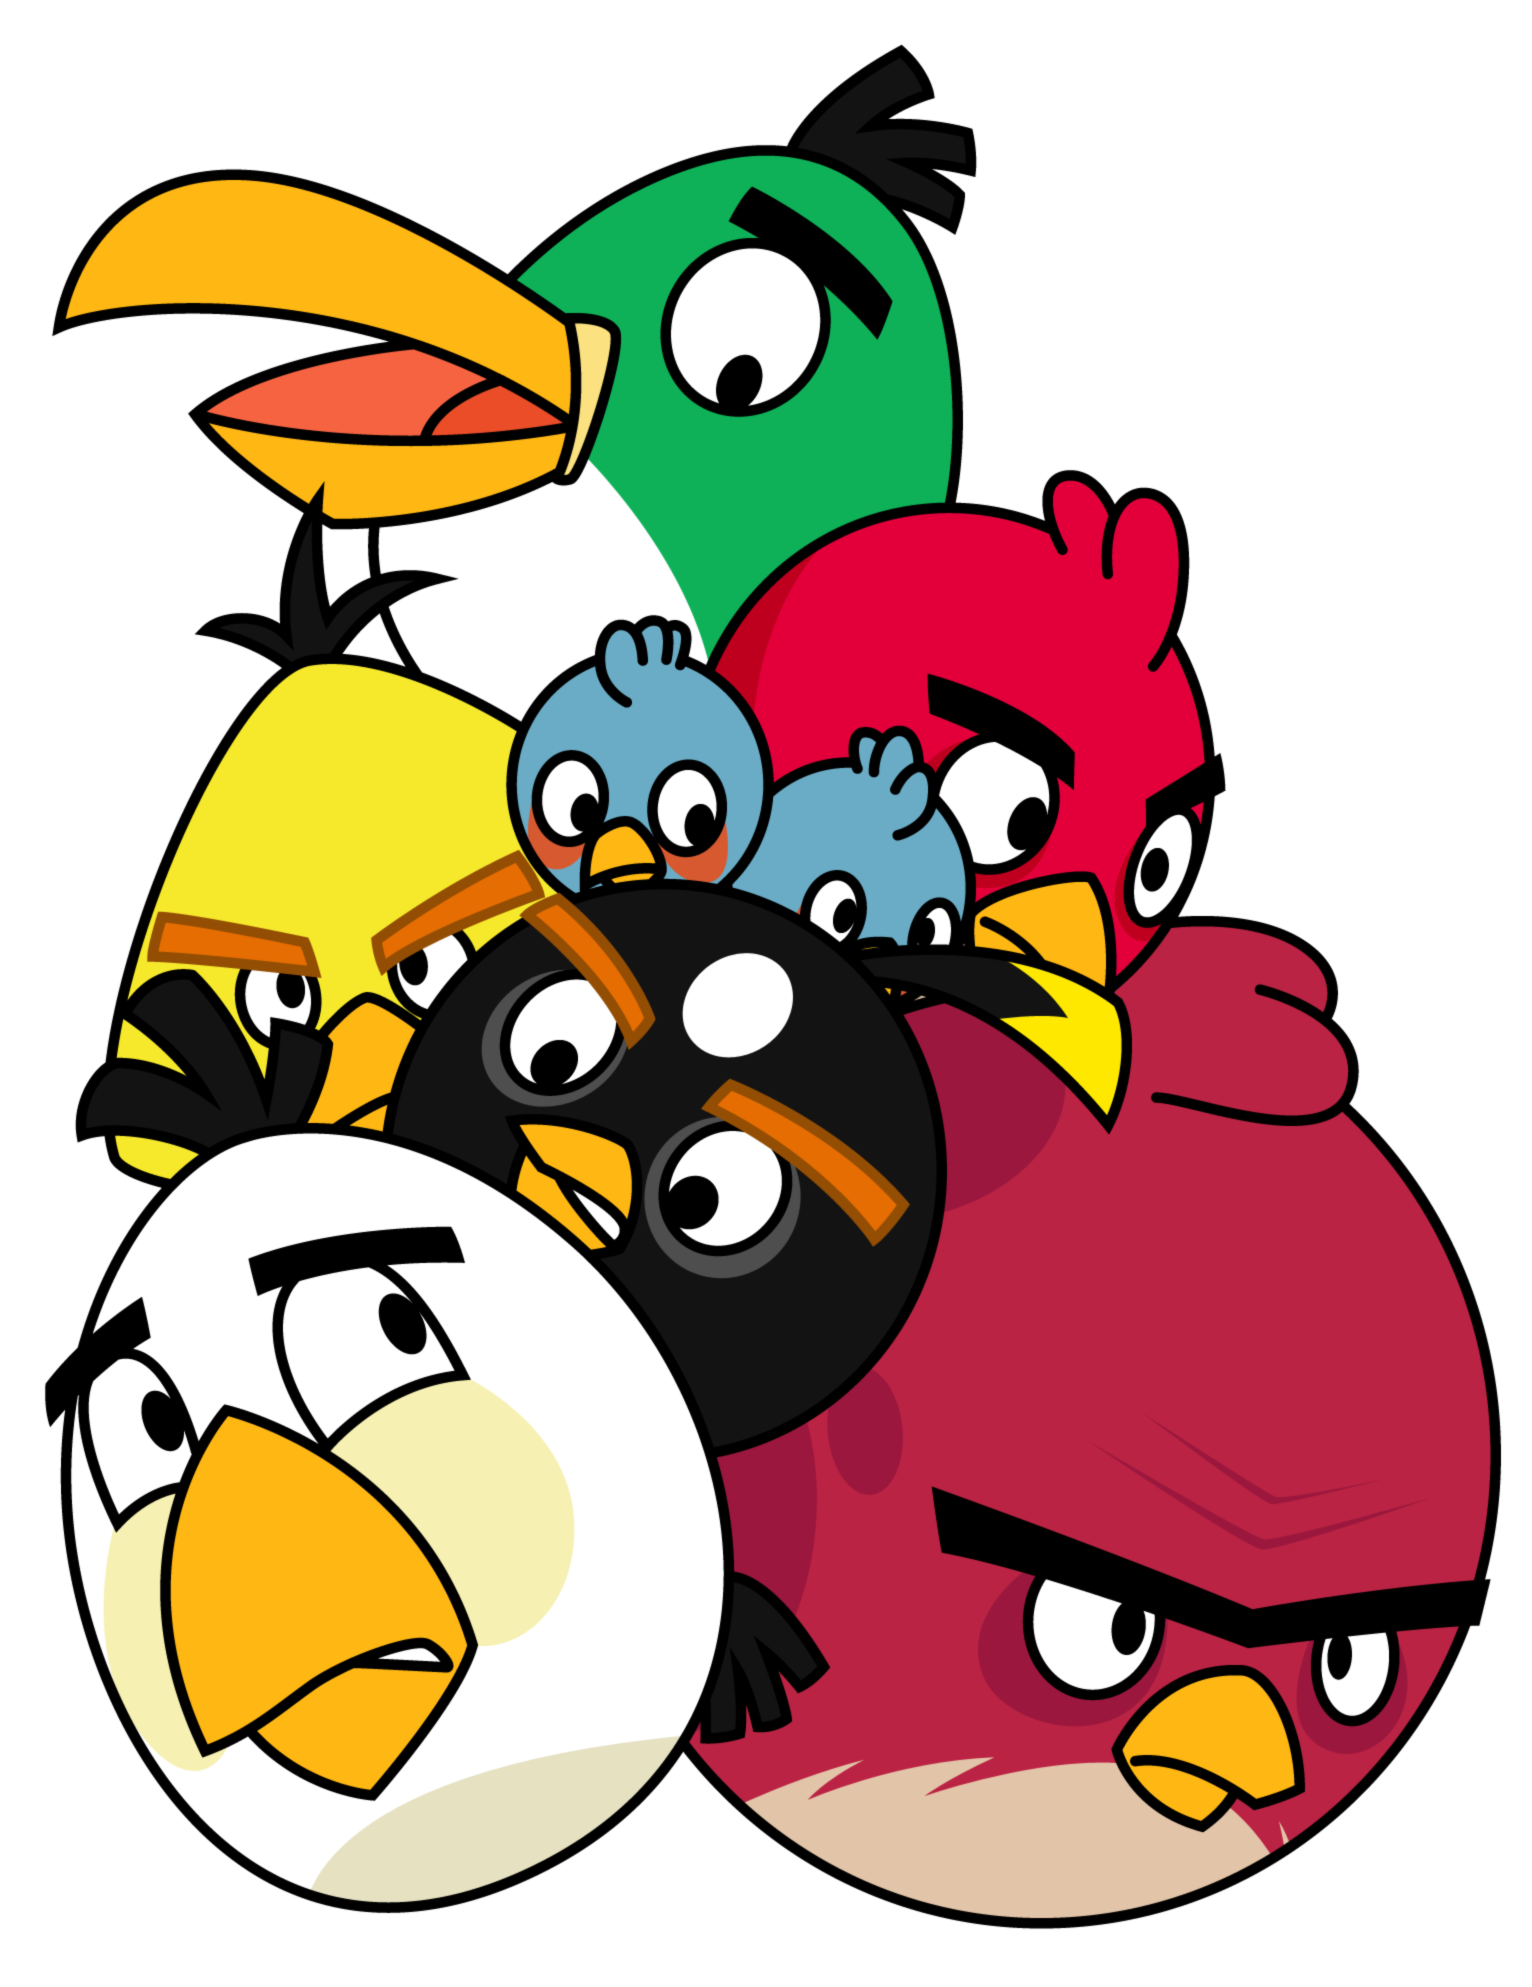 . Hdpng.com Pile Of Angry Birds By Gav Imp Hdpng.com  - Angry Birds, Transparent background PNG HD thumbnail